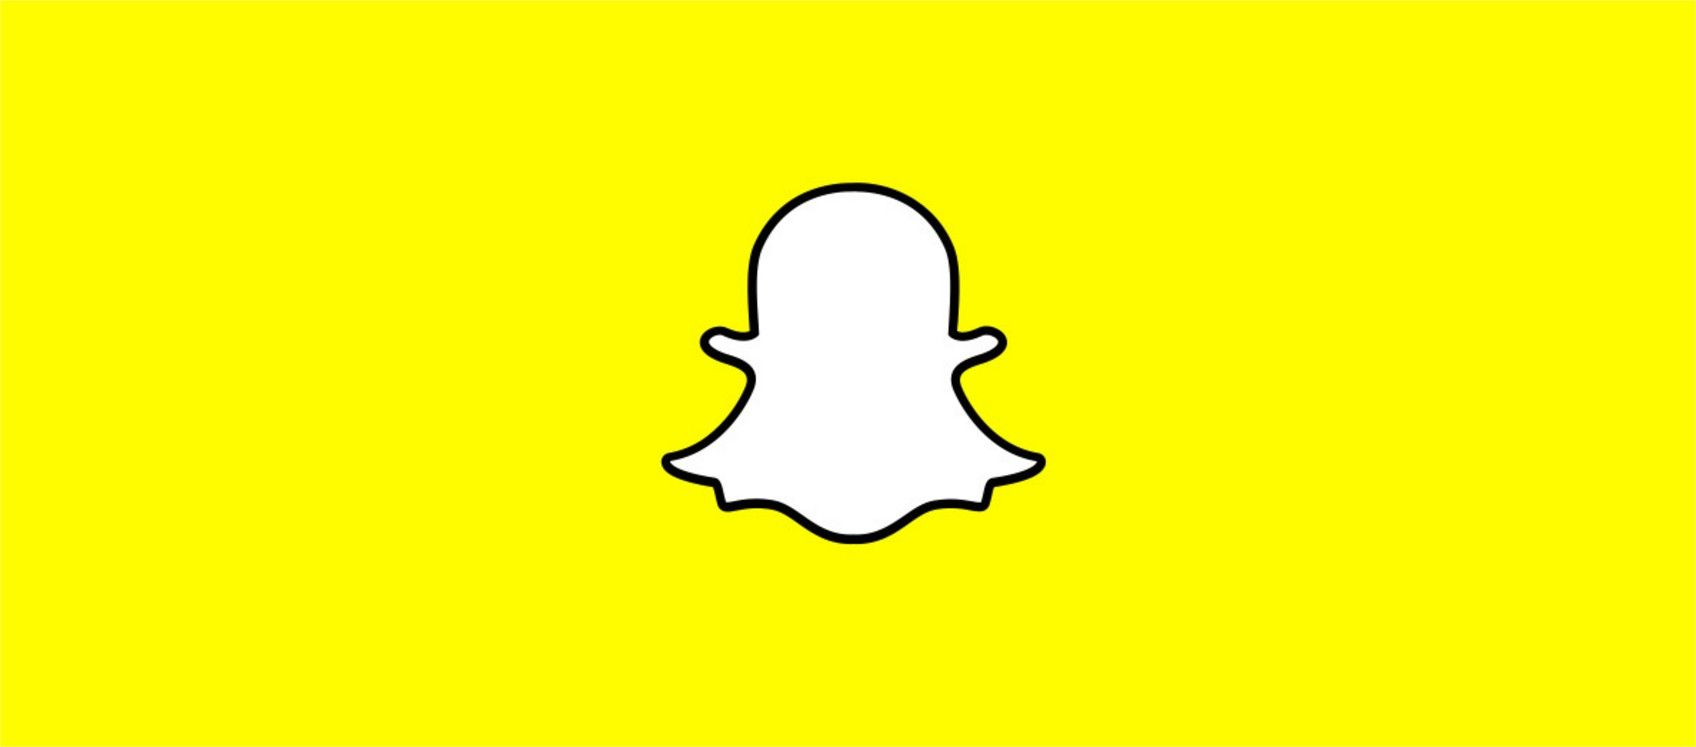 Guide To The Process On Which How To Delete Snapchat Account  Howtodeleteasnapchatphoto20jan20132012012201020pmforhow  Howtodeleteasnapchatstory6steps